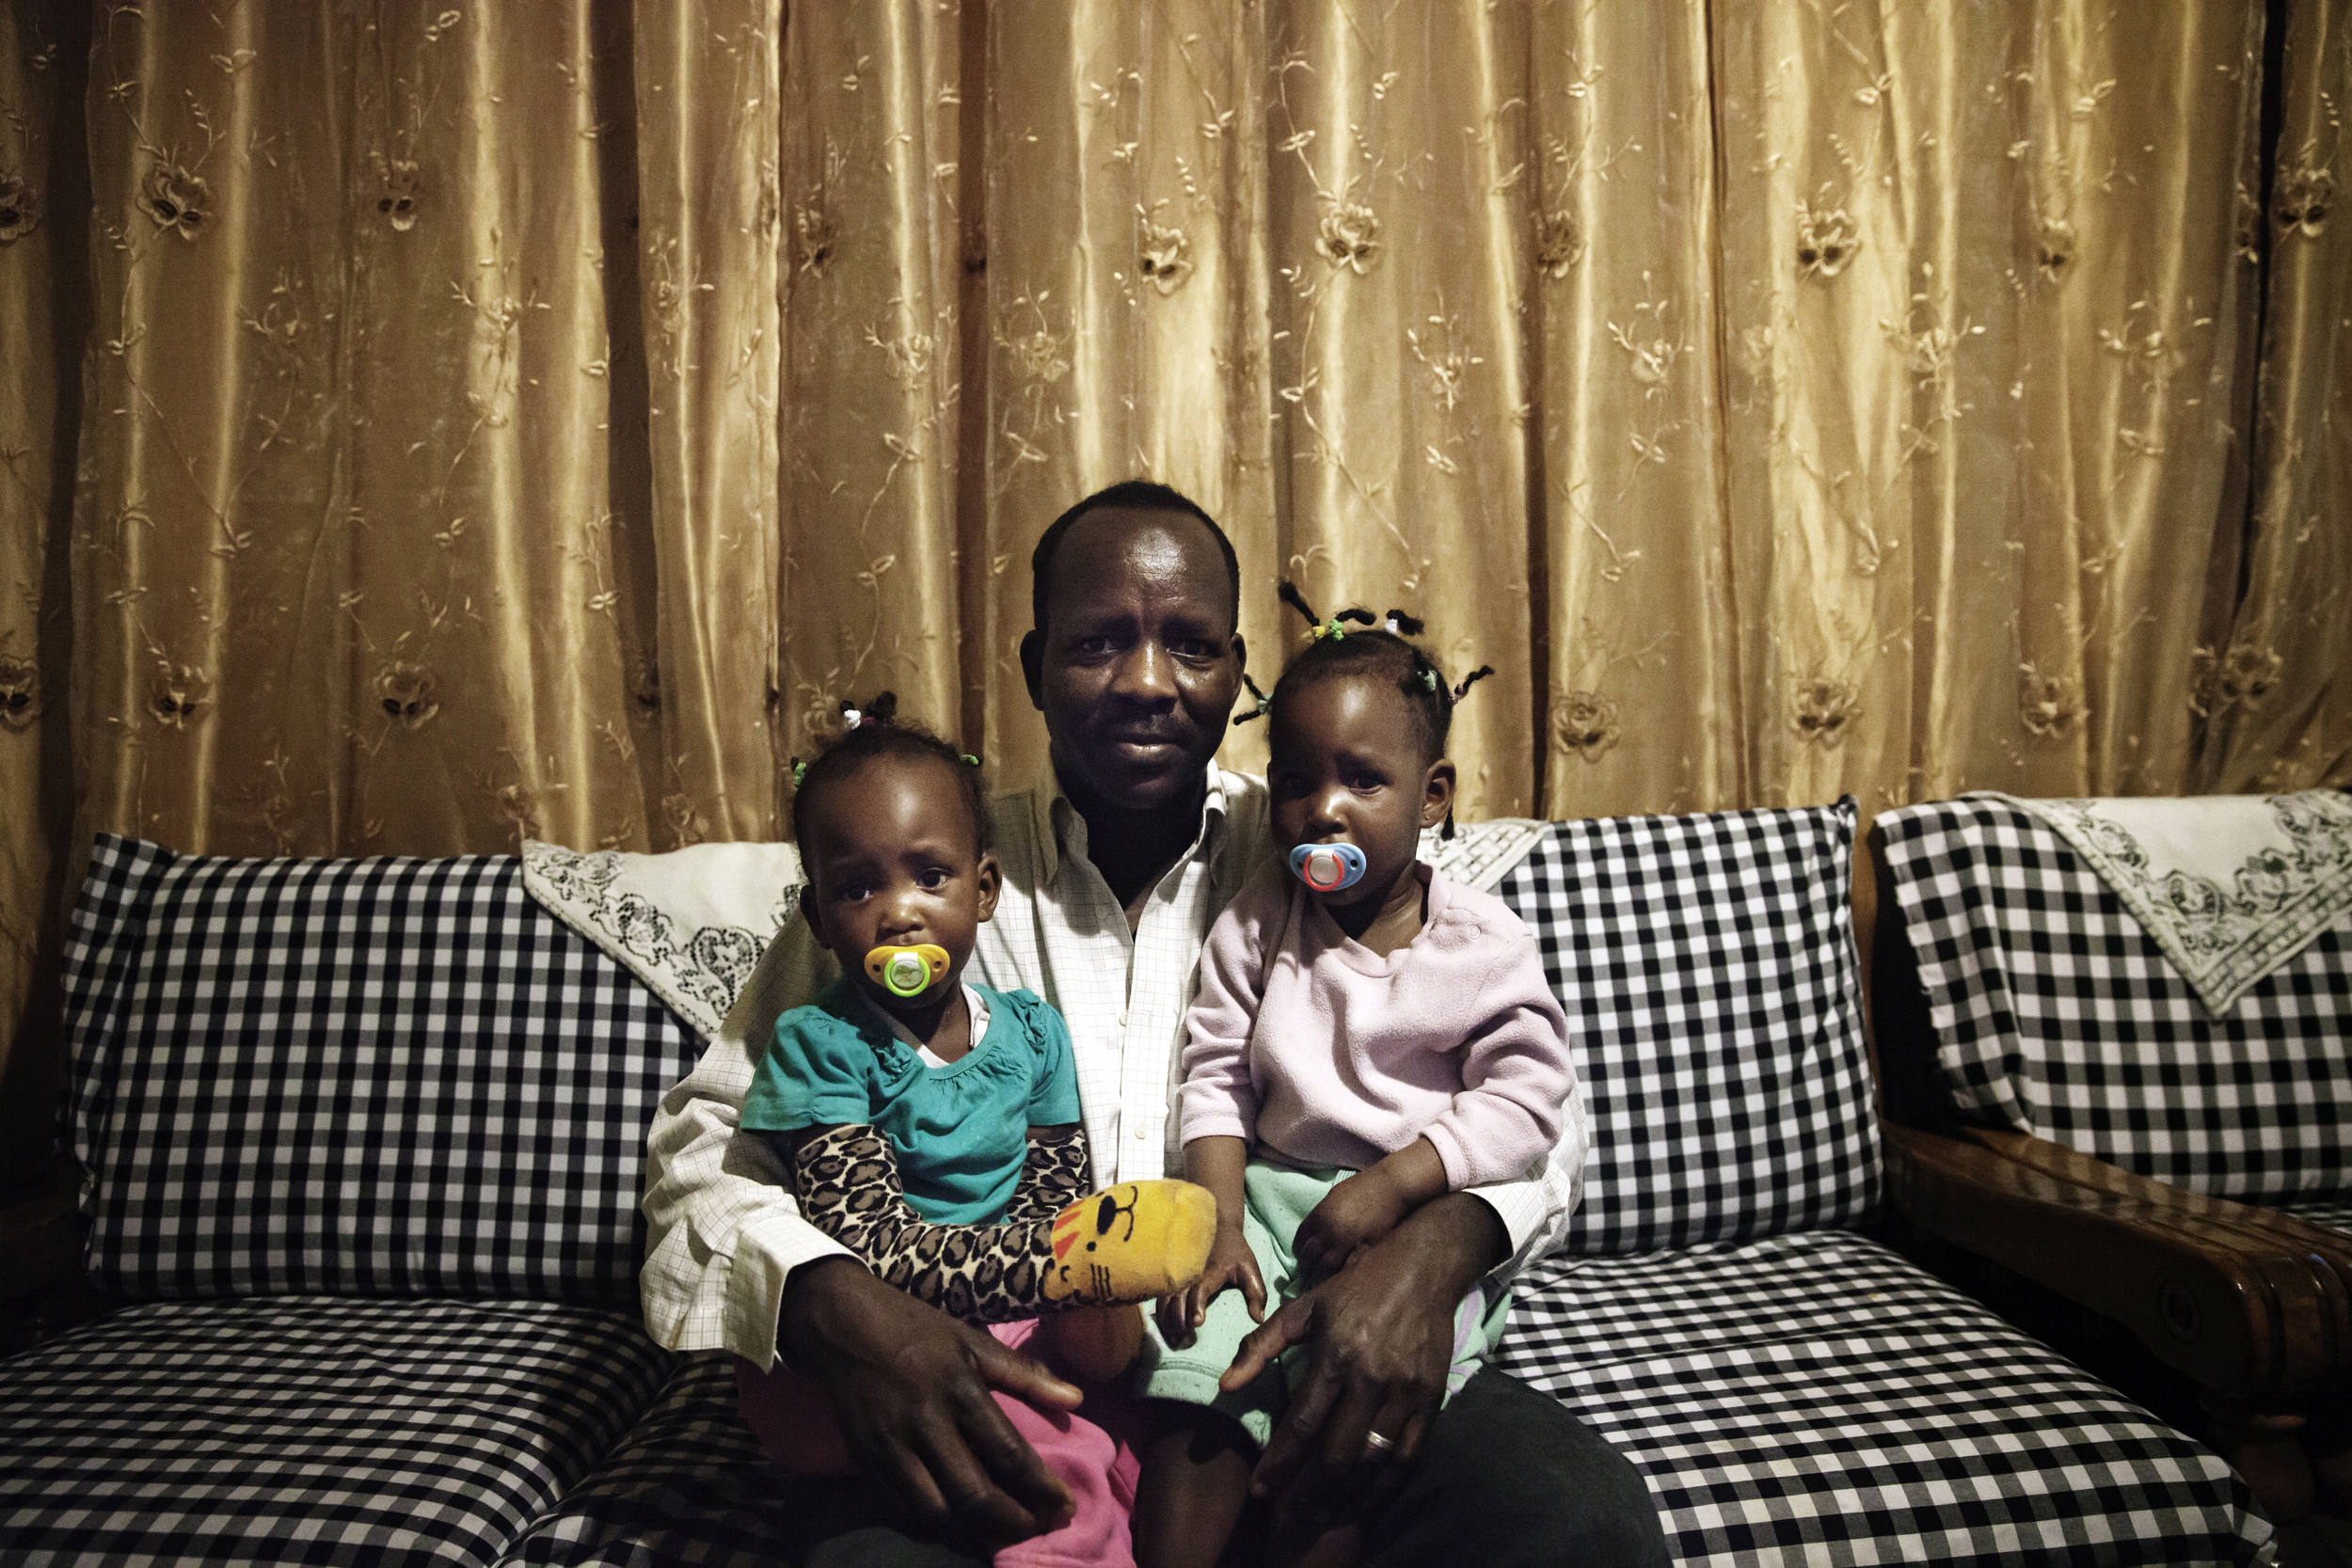 """Boshora Adam with his twin daughters in their home in Tel Aviv. """"The hardest part about raising my children in Israel is that it's becoming more segregated. On the playground you notice that parents keep their children away from African children, and this worries me for my children's future."""""""